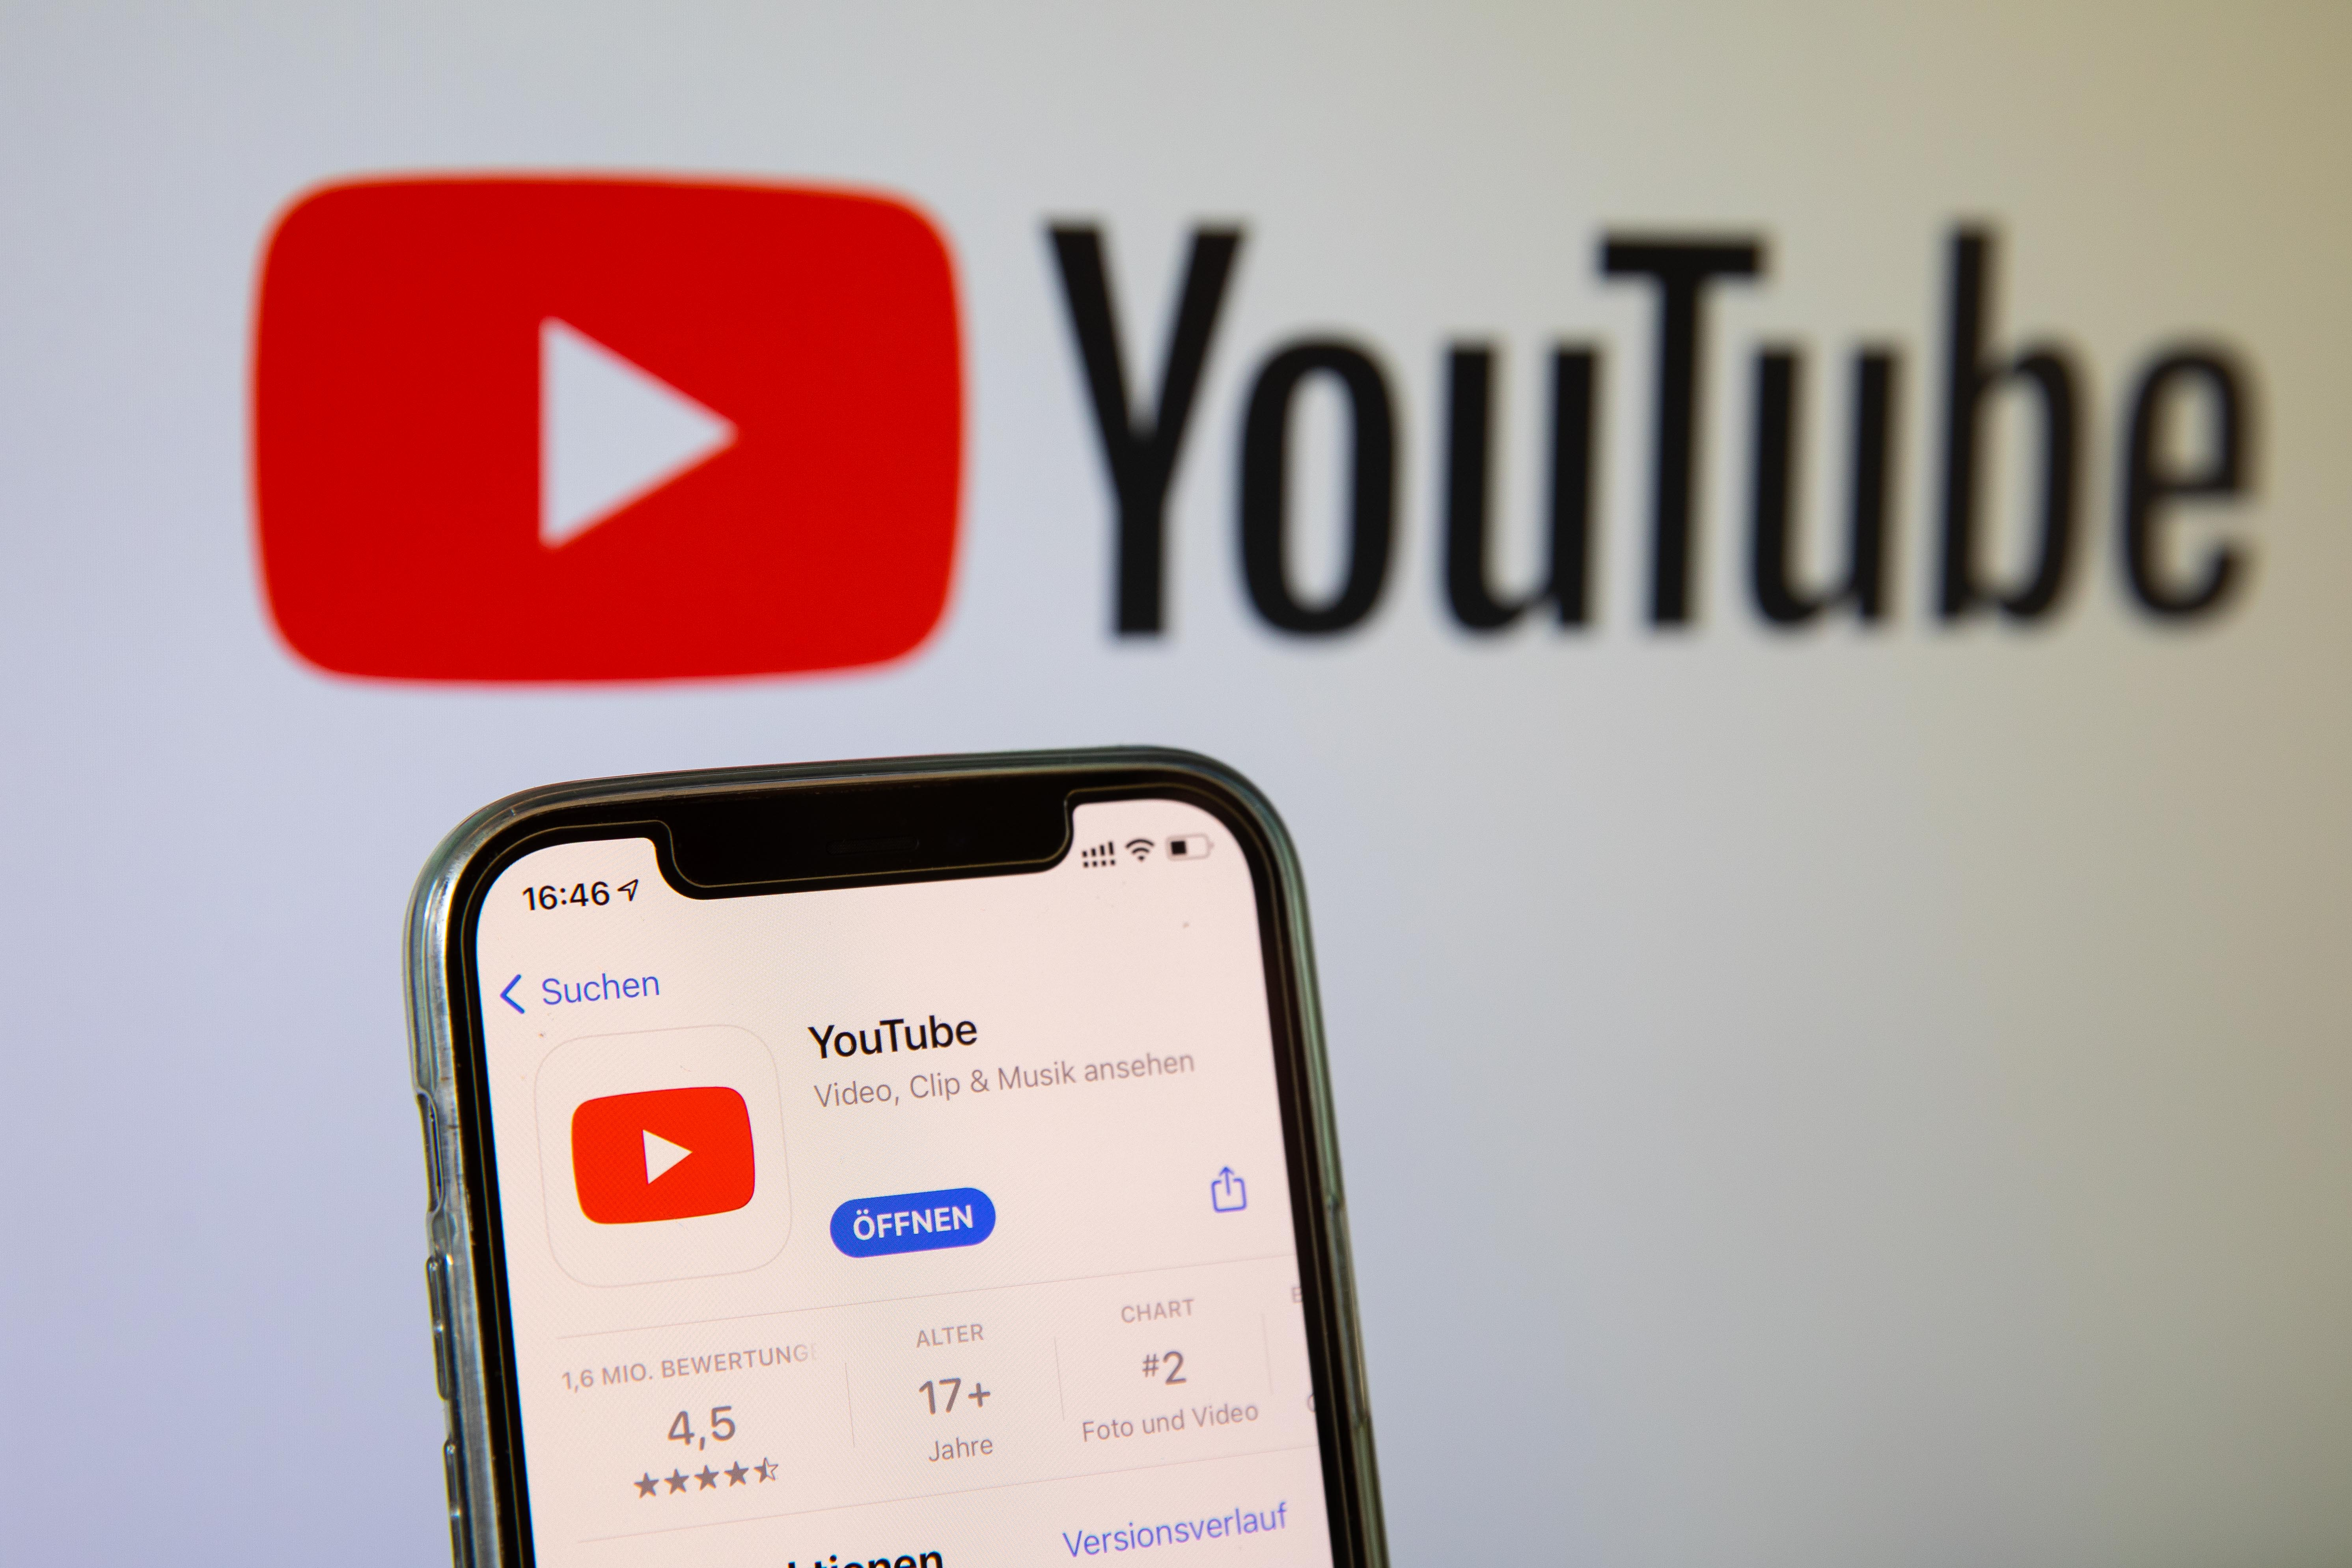 BARGTEHEIDE, GERMANY - MAY 03: (BILD ZEITUNG OUT)  In this photo illustration, a Youtube App in the IOS App Store on May 03, 2021 in Bargteheide, Germany. (Photo by Katja Knupper/Die Fotowerft/DeFodi Images via Getty Images)